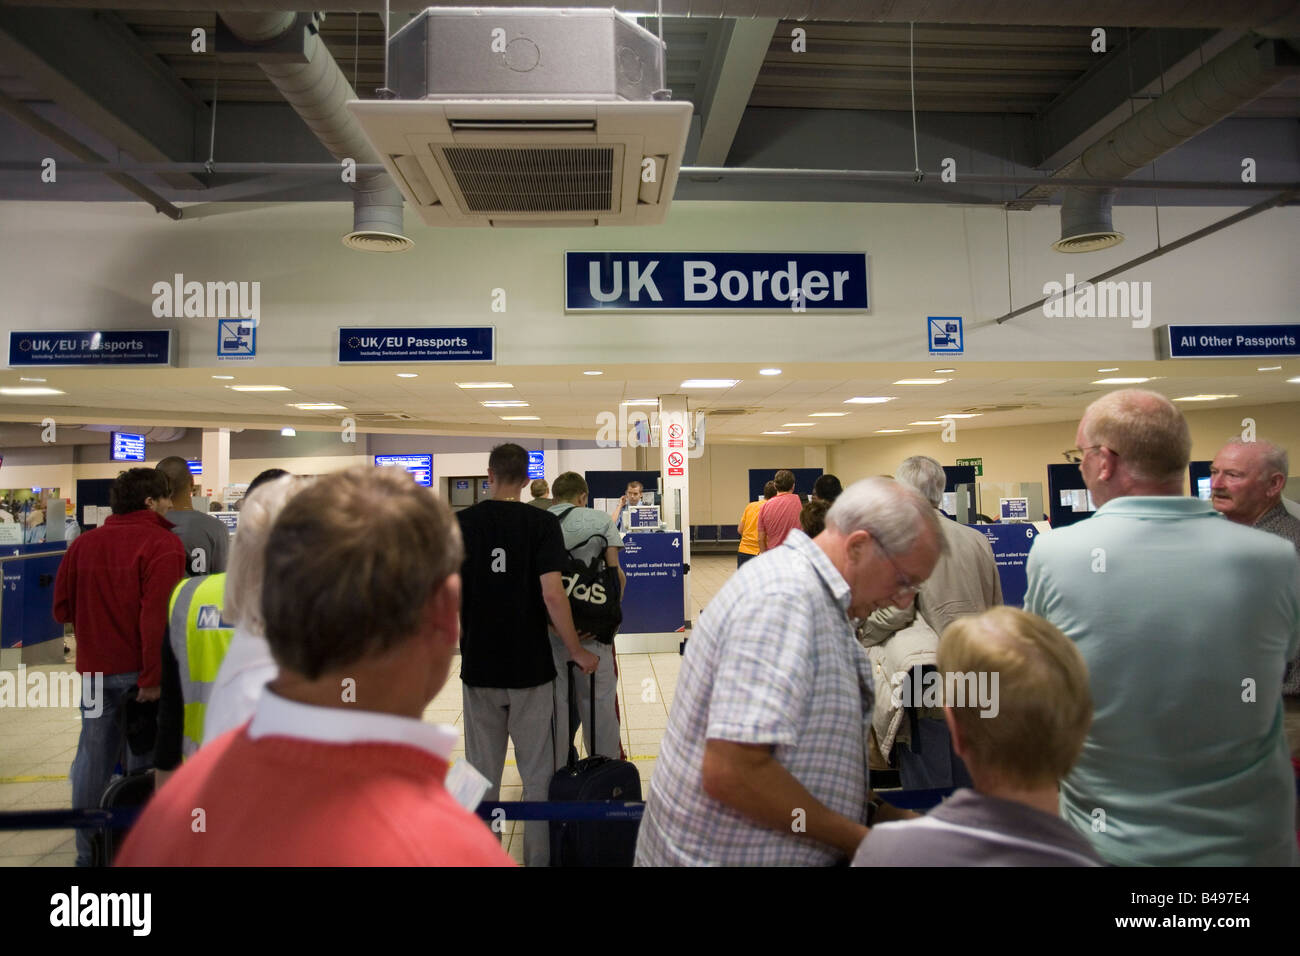 People queuing at immigration UK border, Luton Airport, England, Britain, Europe. - Stock Image